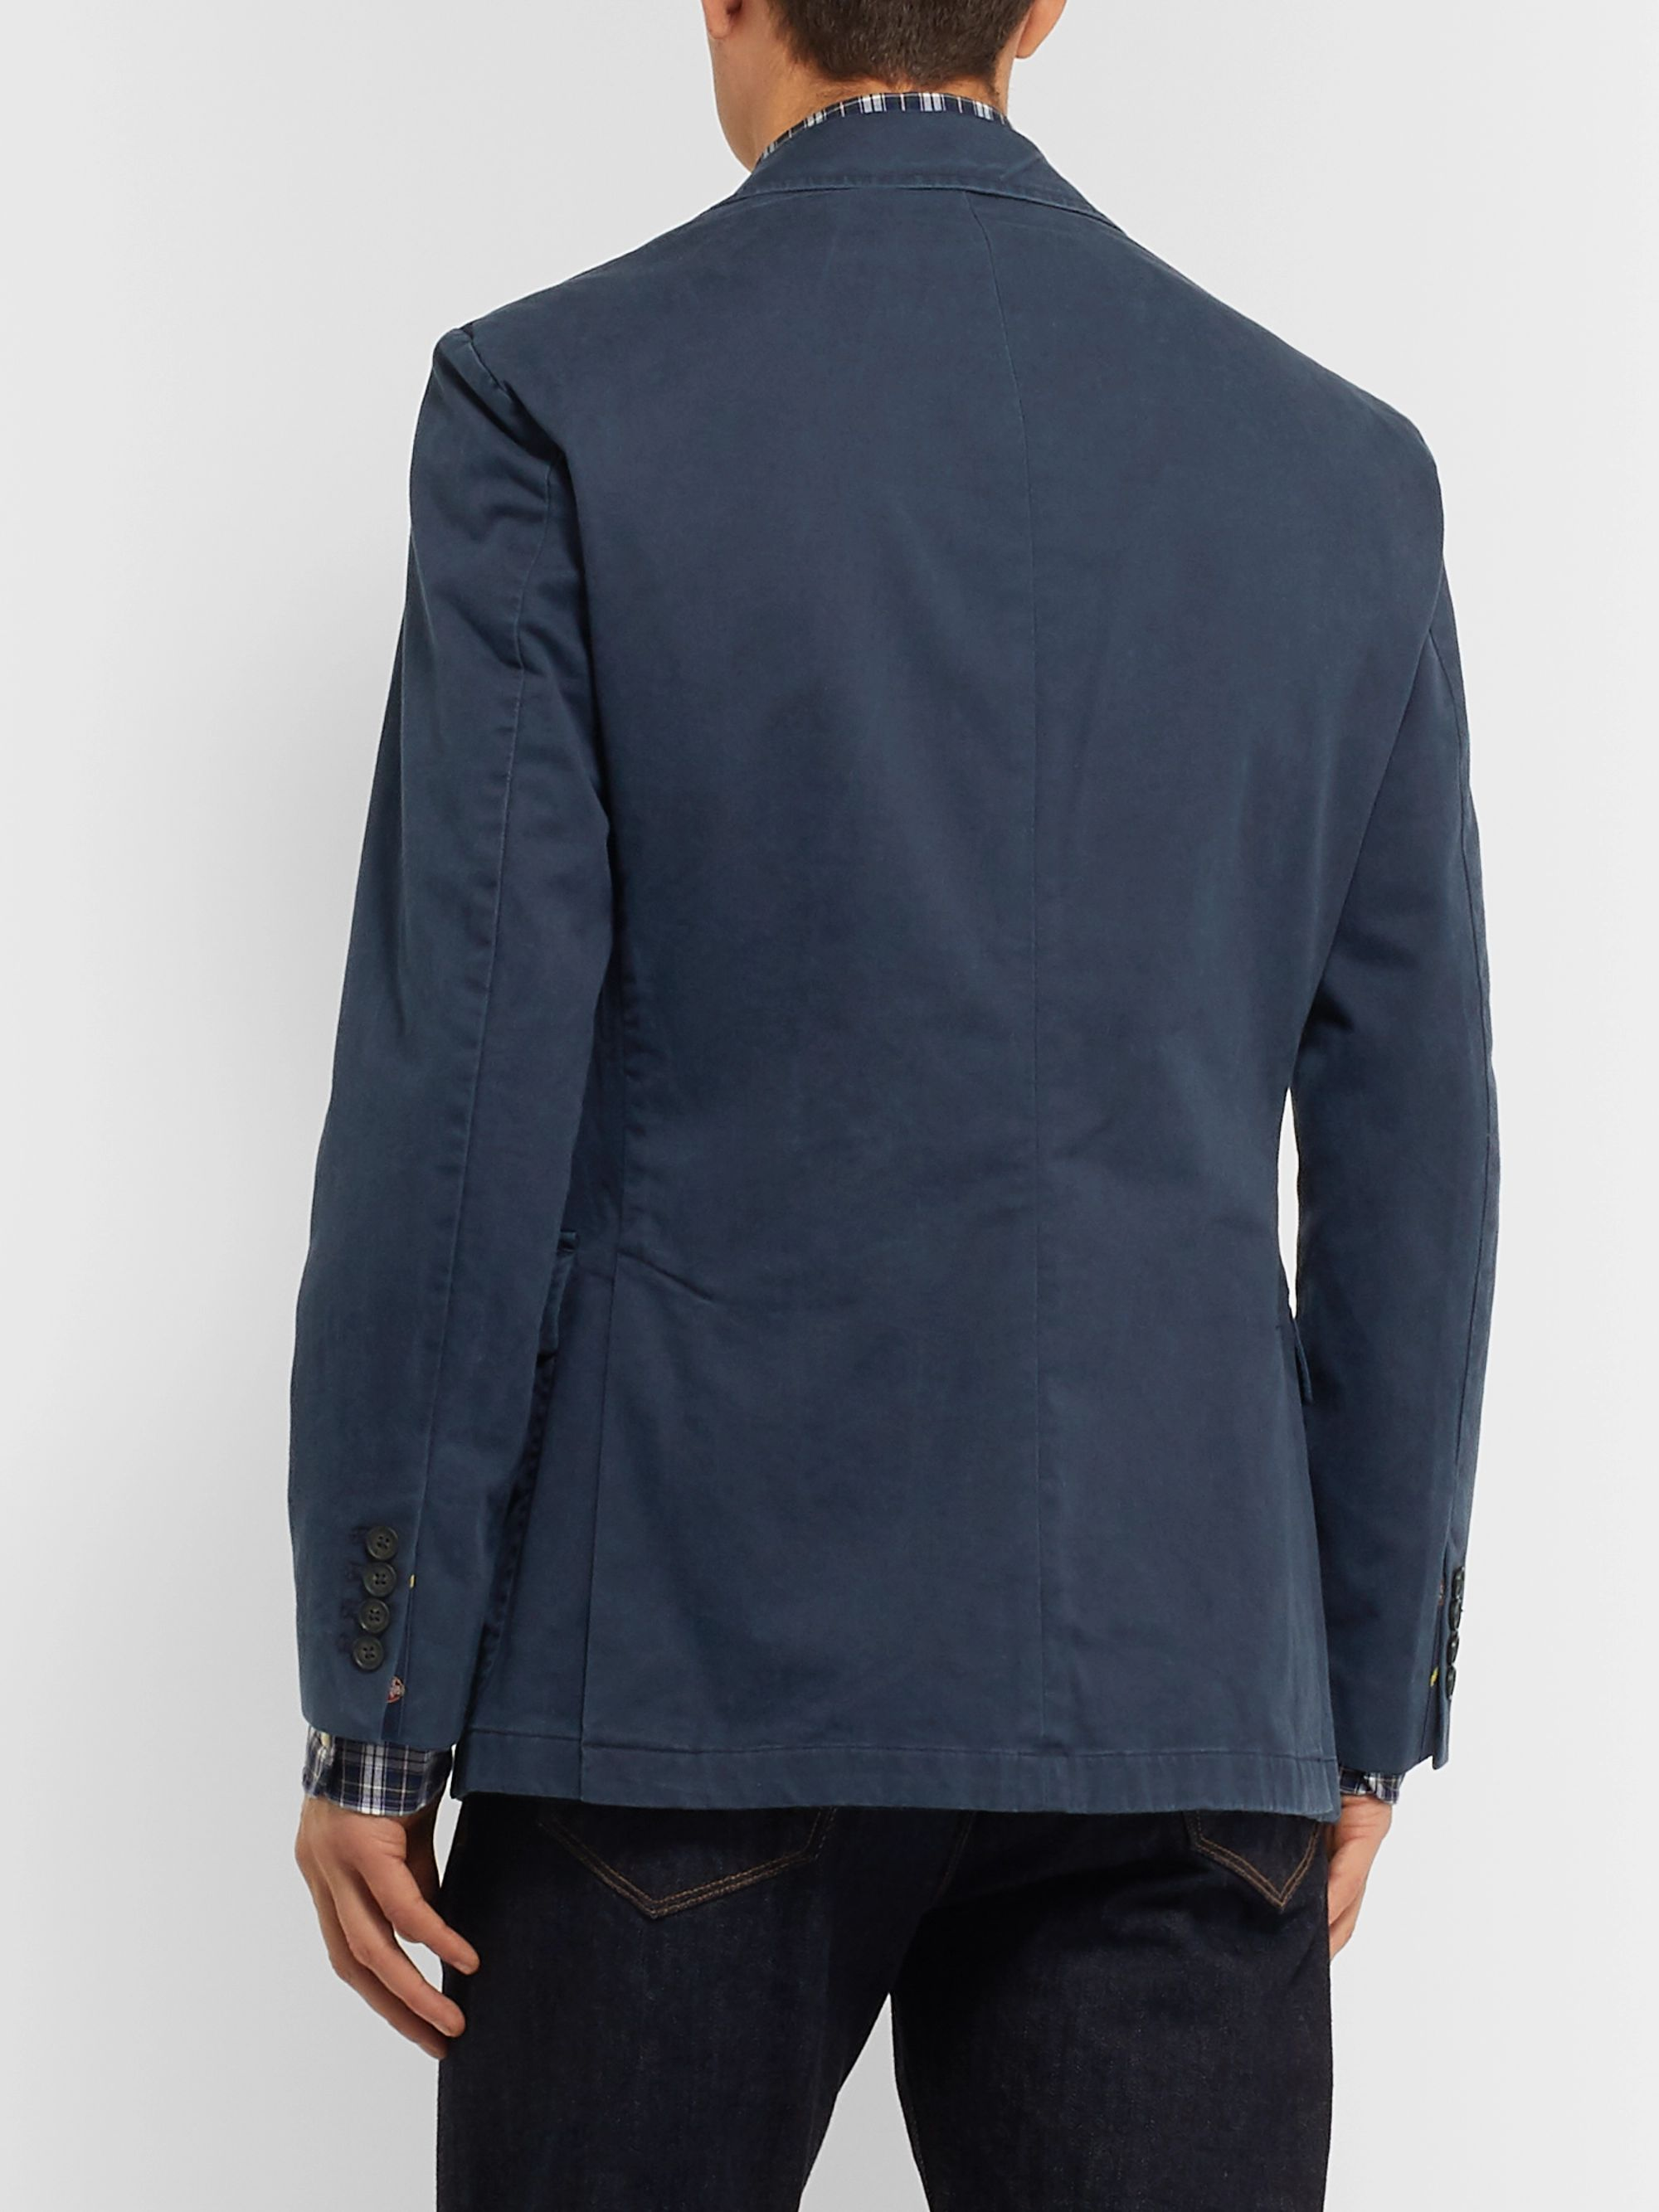 Polo Ralph Lauren Navy Slim-Fit Unstructured Brushed Cotton-Blend Twill Blazer